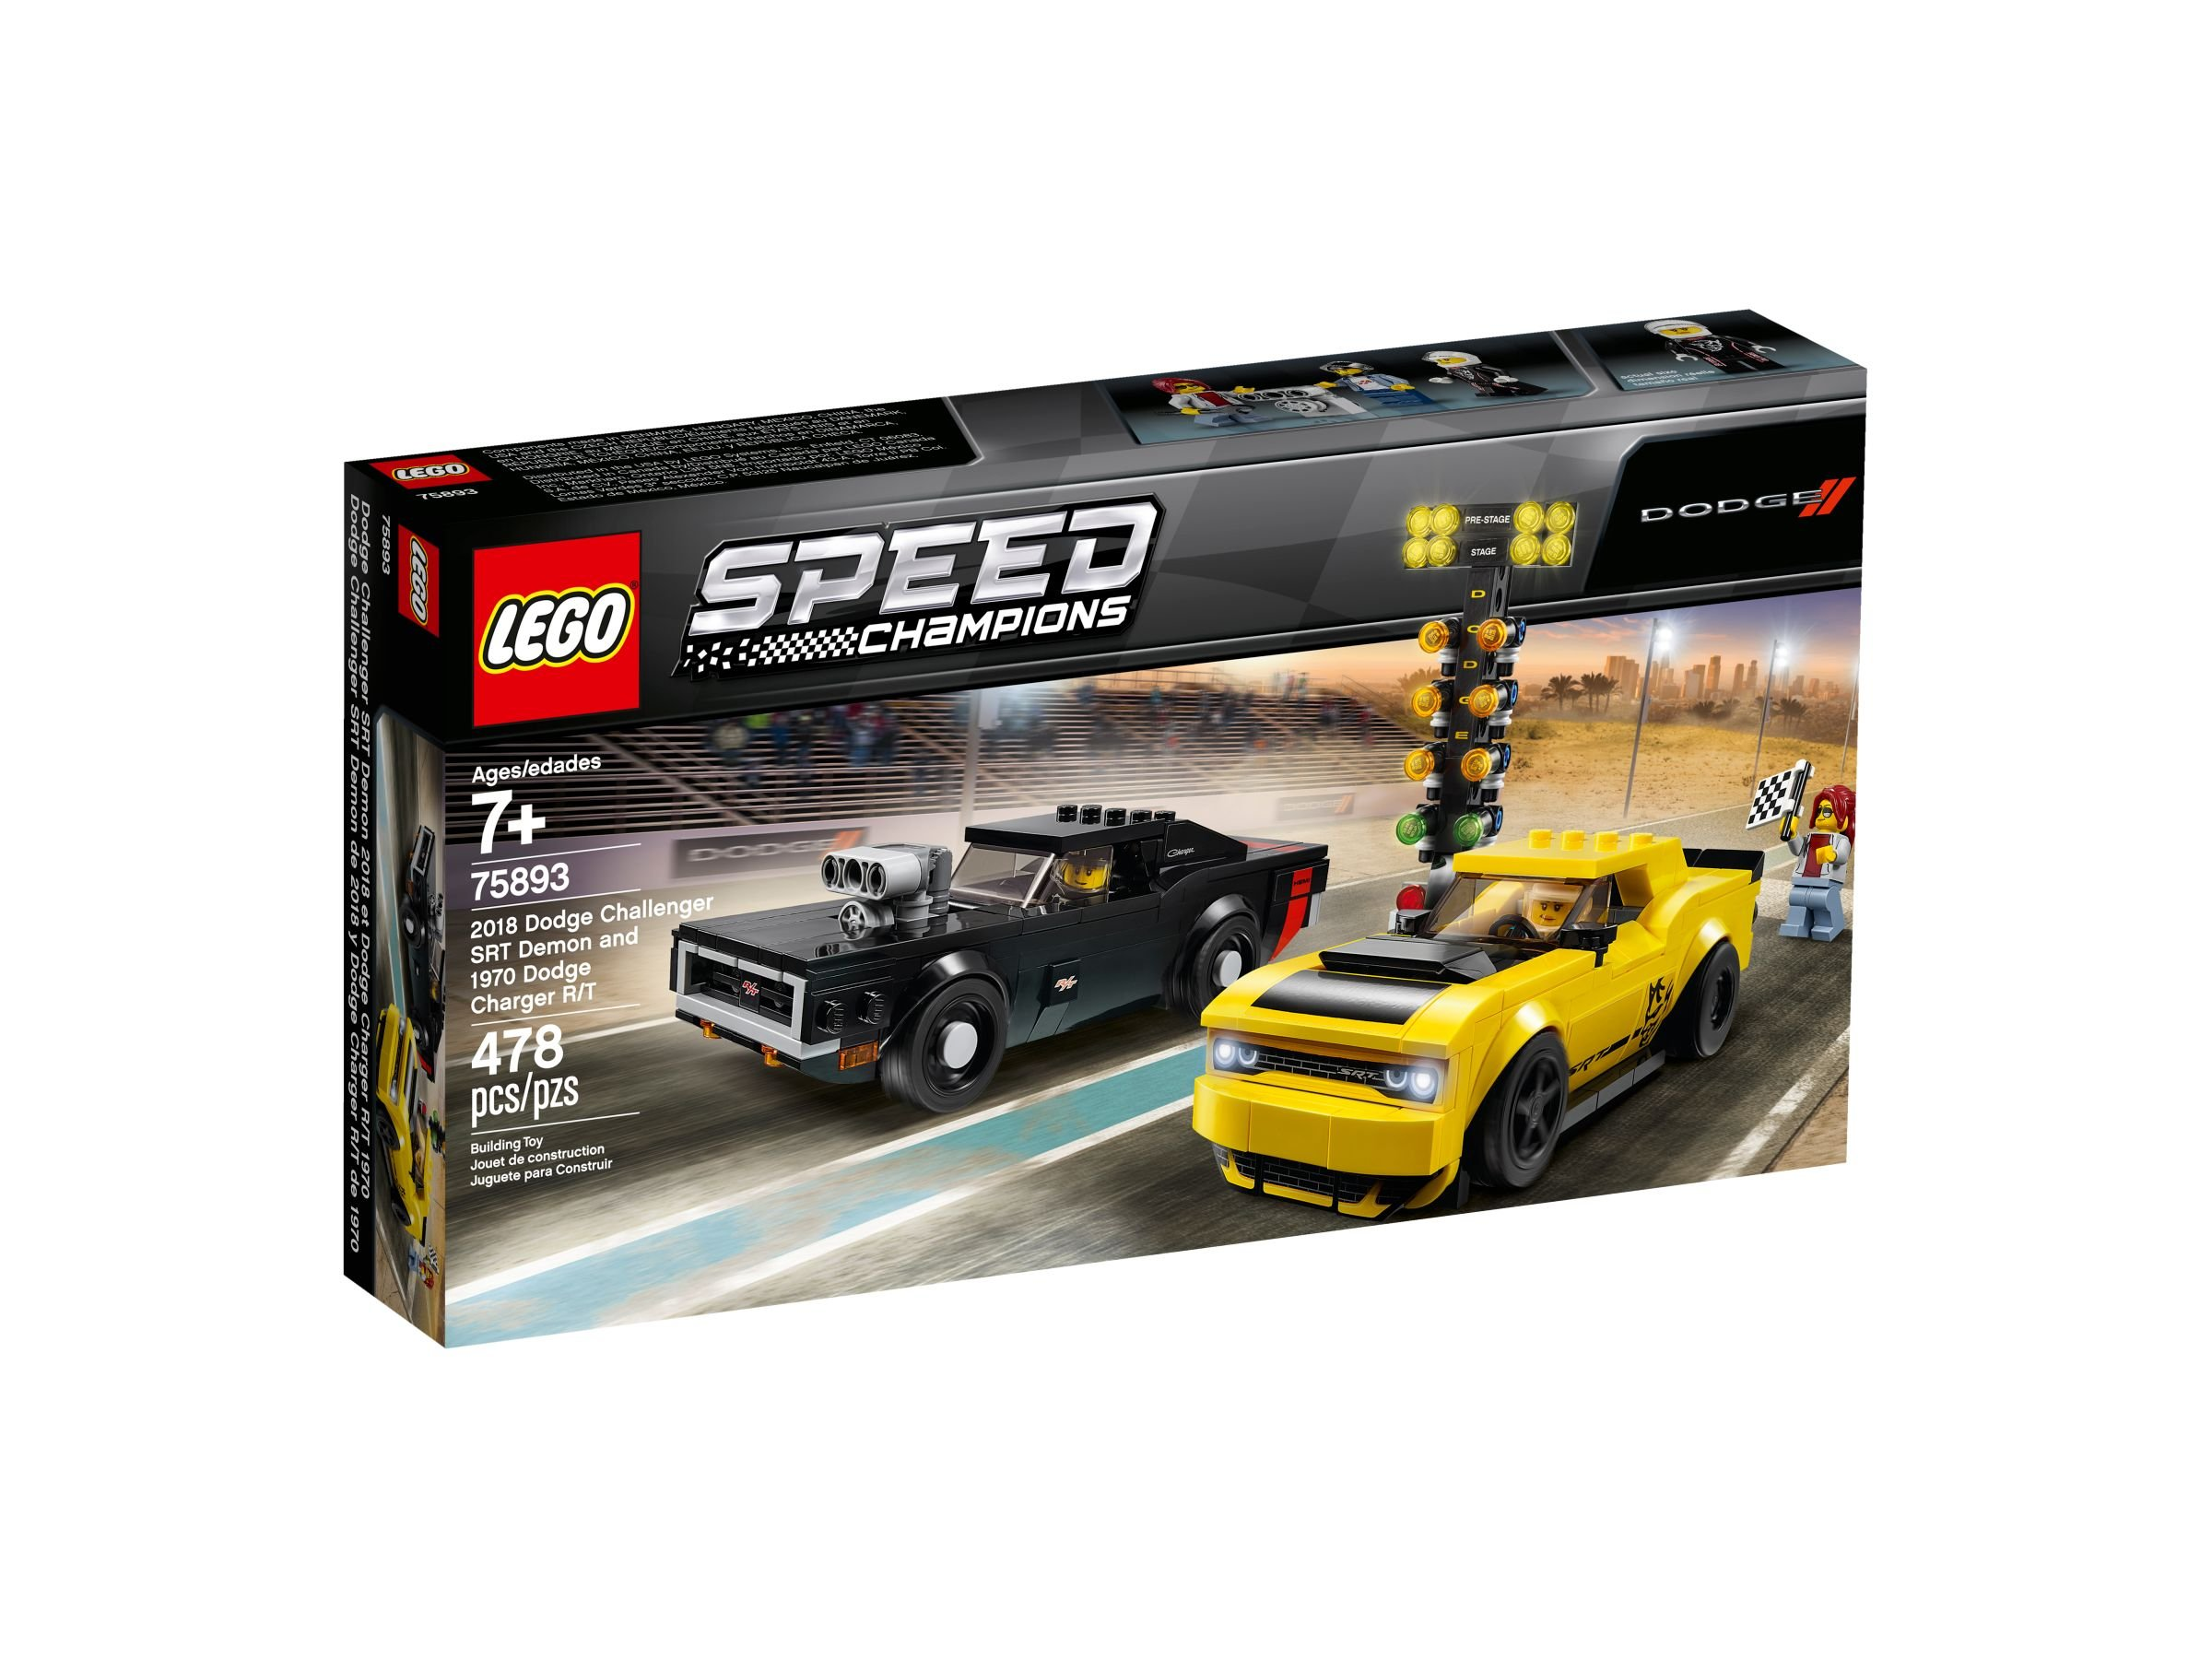 LEGO Speed Champions 75893 2018 Dodge Challenger SRT Demon und 1970 Dodge Charger R/T LEGO_75893_alt1.jpg